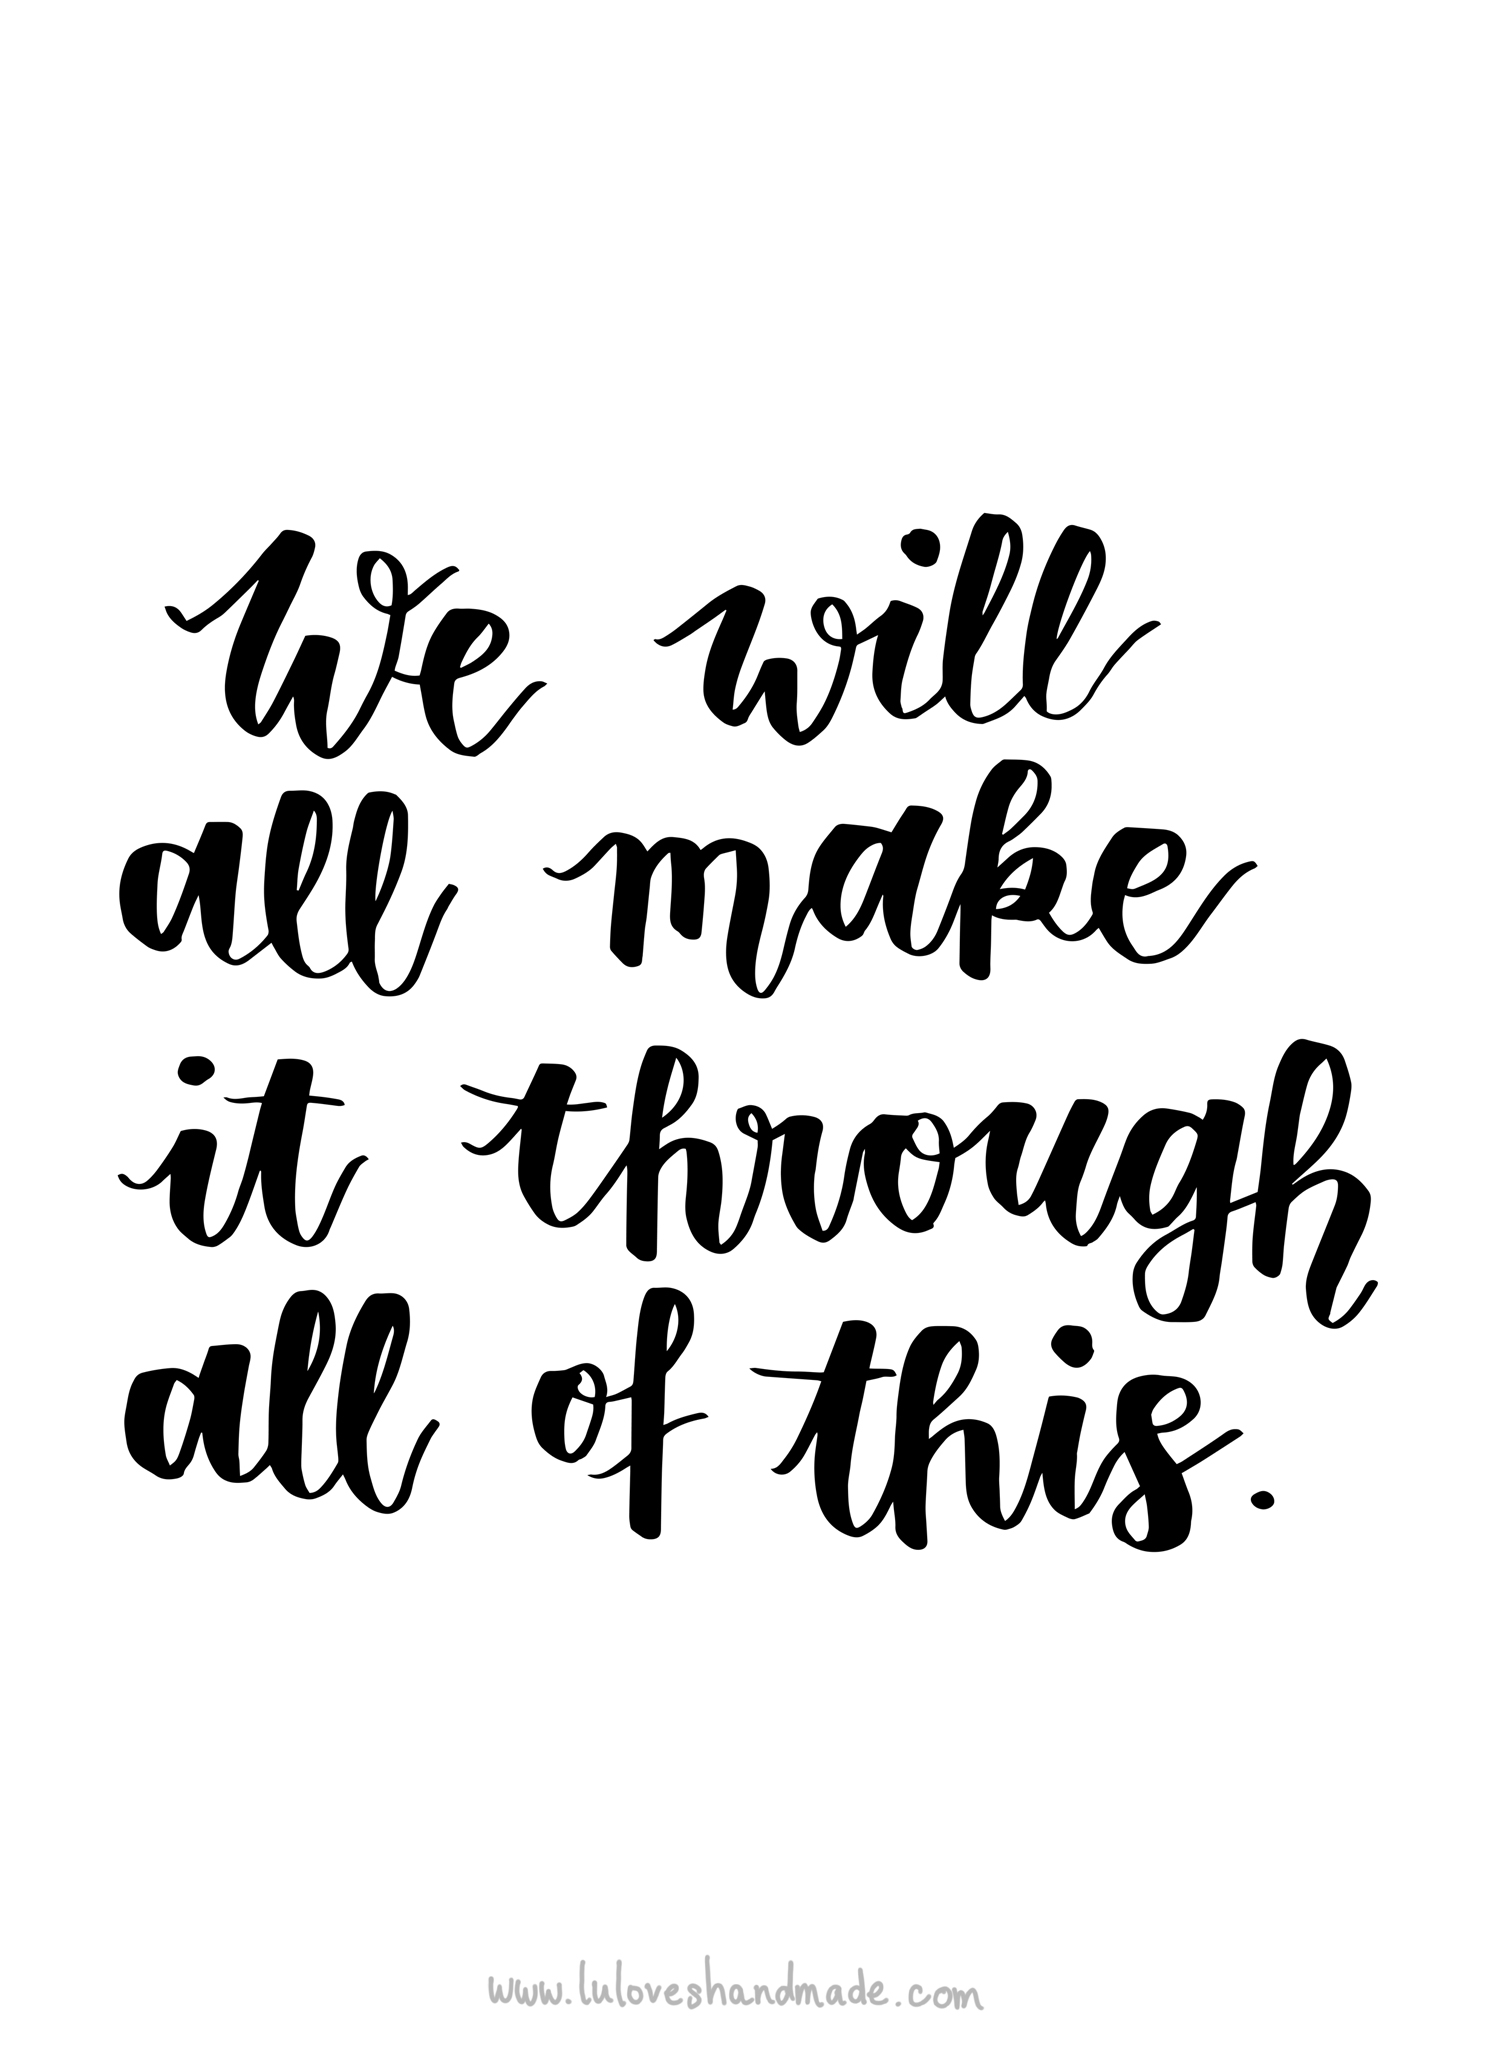 Luloveshandmade-Free Handlettering Printable-We Will All Make It Through All Of This (2)